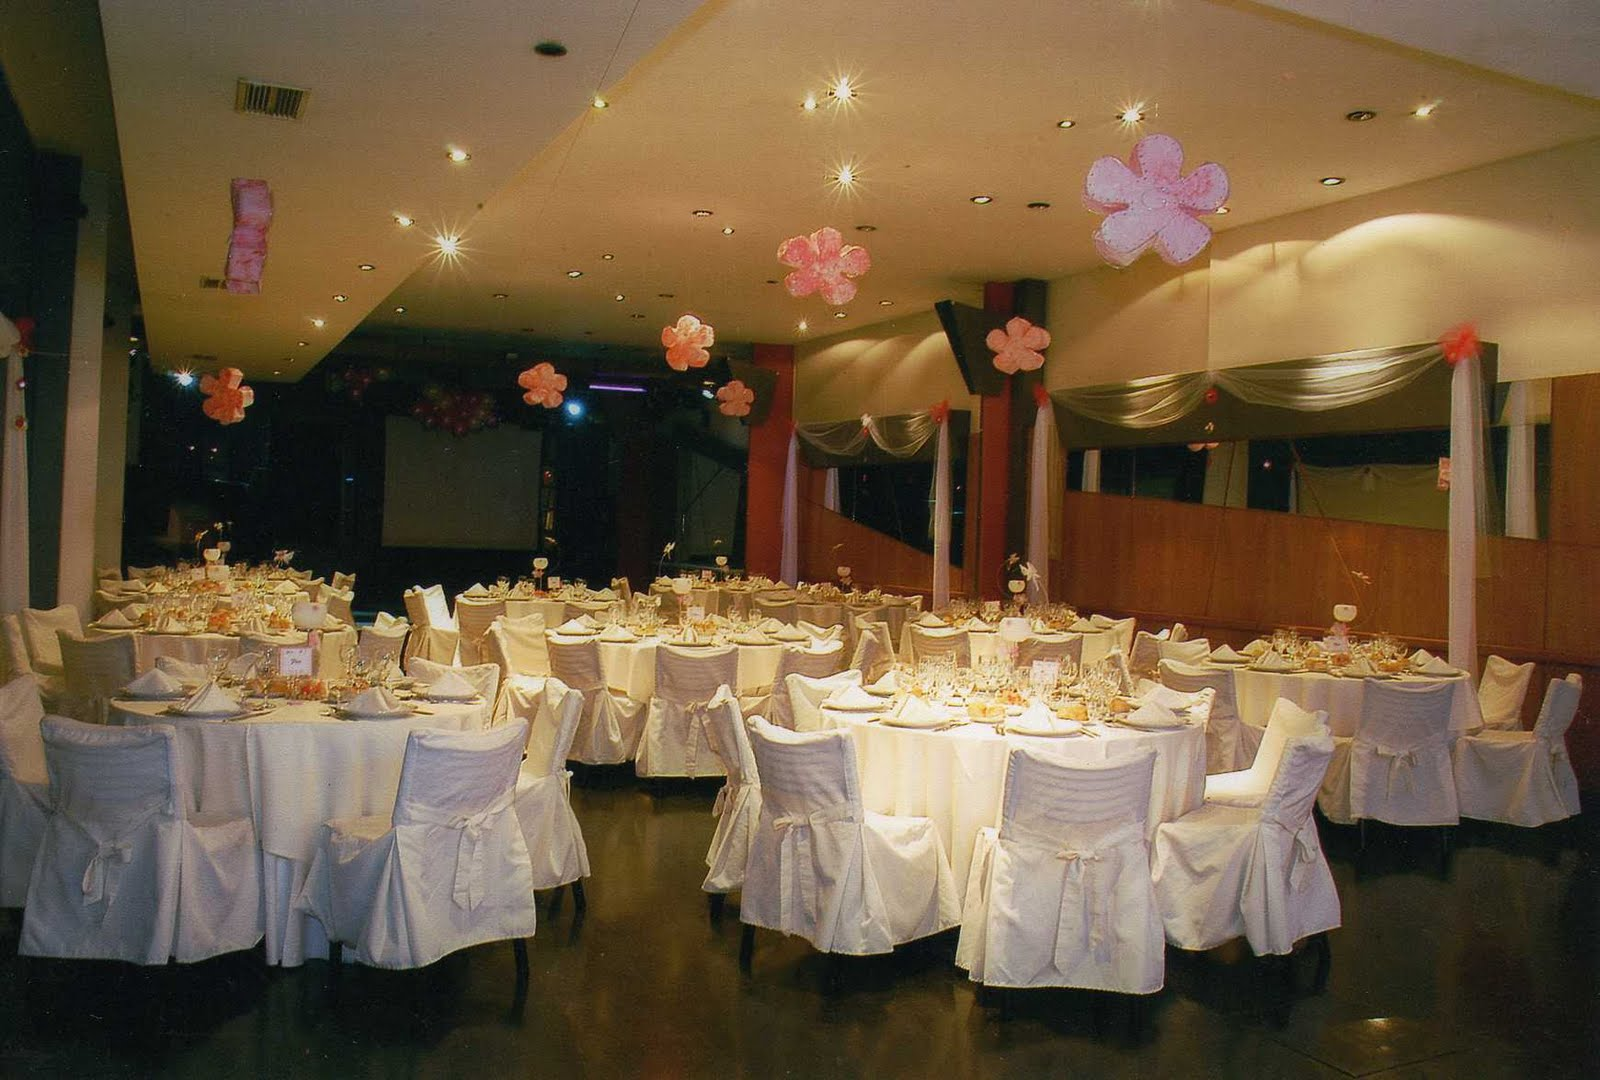 cf3a8b24d6b Decoracion Salon Boda. Excellent Galeria Decoracin Saln Boda Y ...